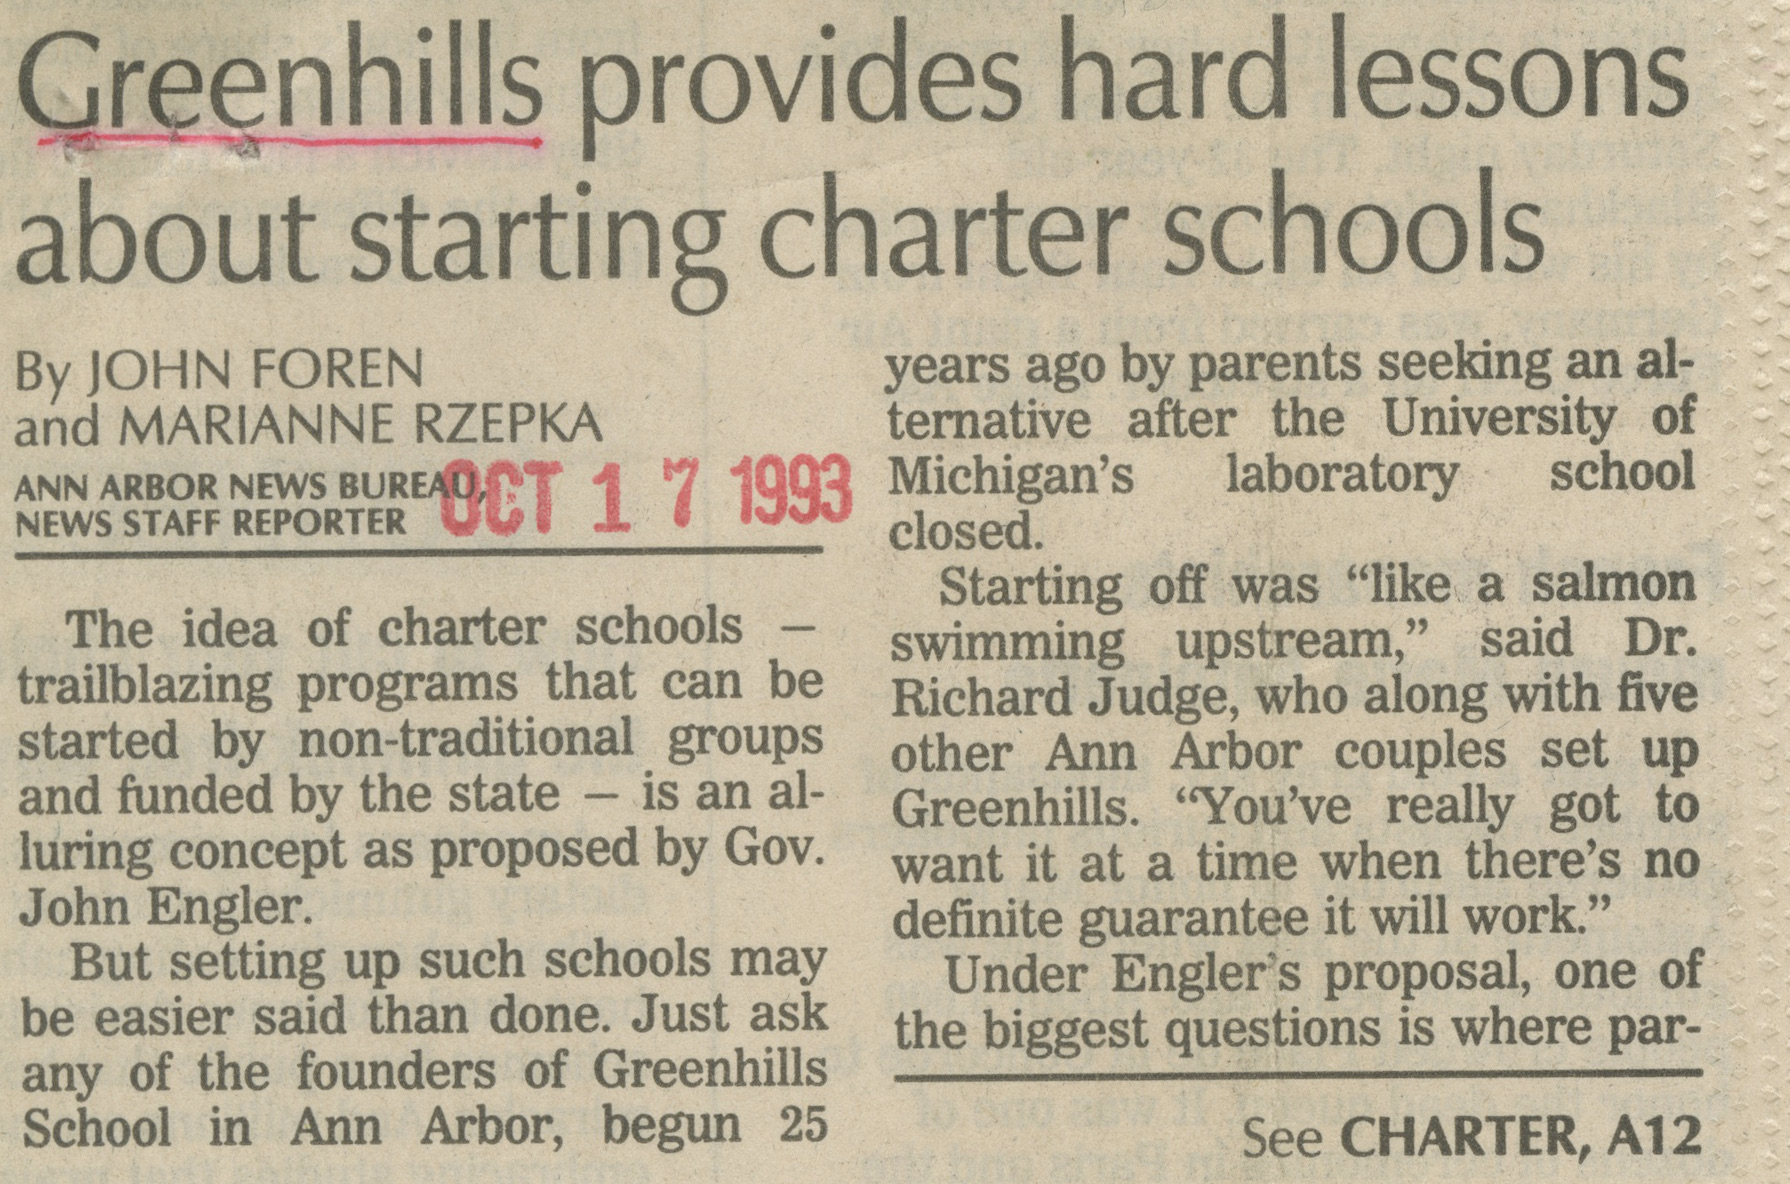 Greenhills Provides Hard Lessons About Starting Charter Schools image